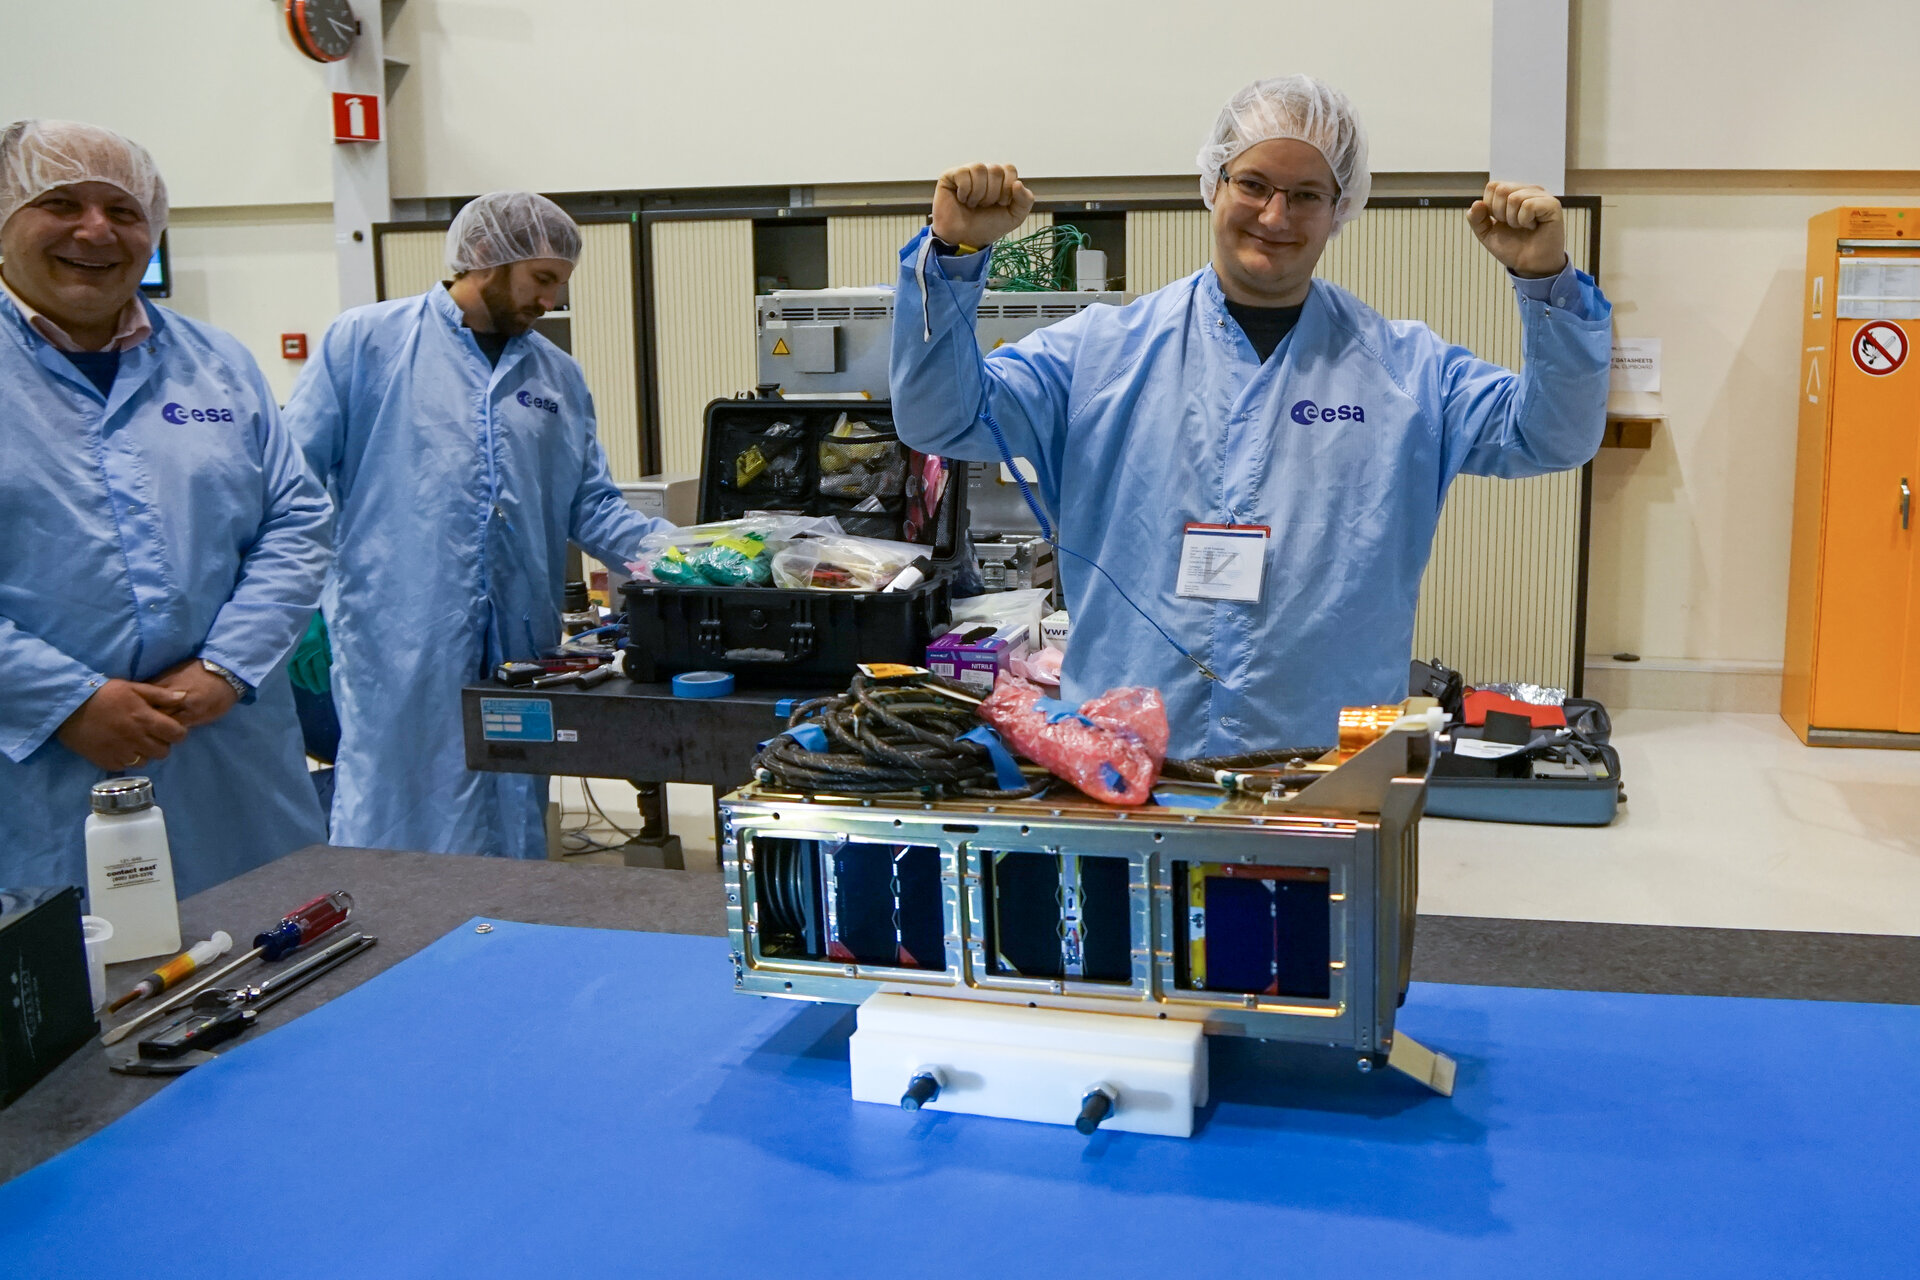 The three CubeSats nicely fitting into their orbital deployer